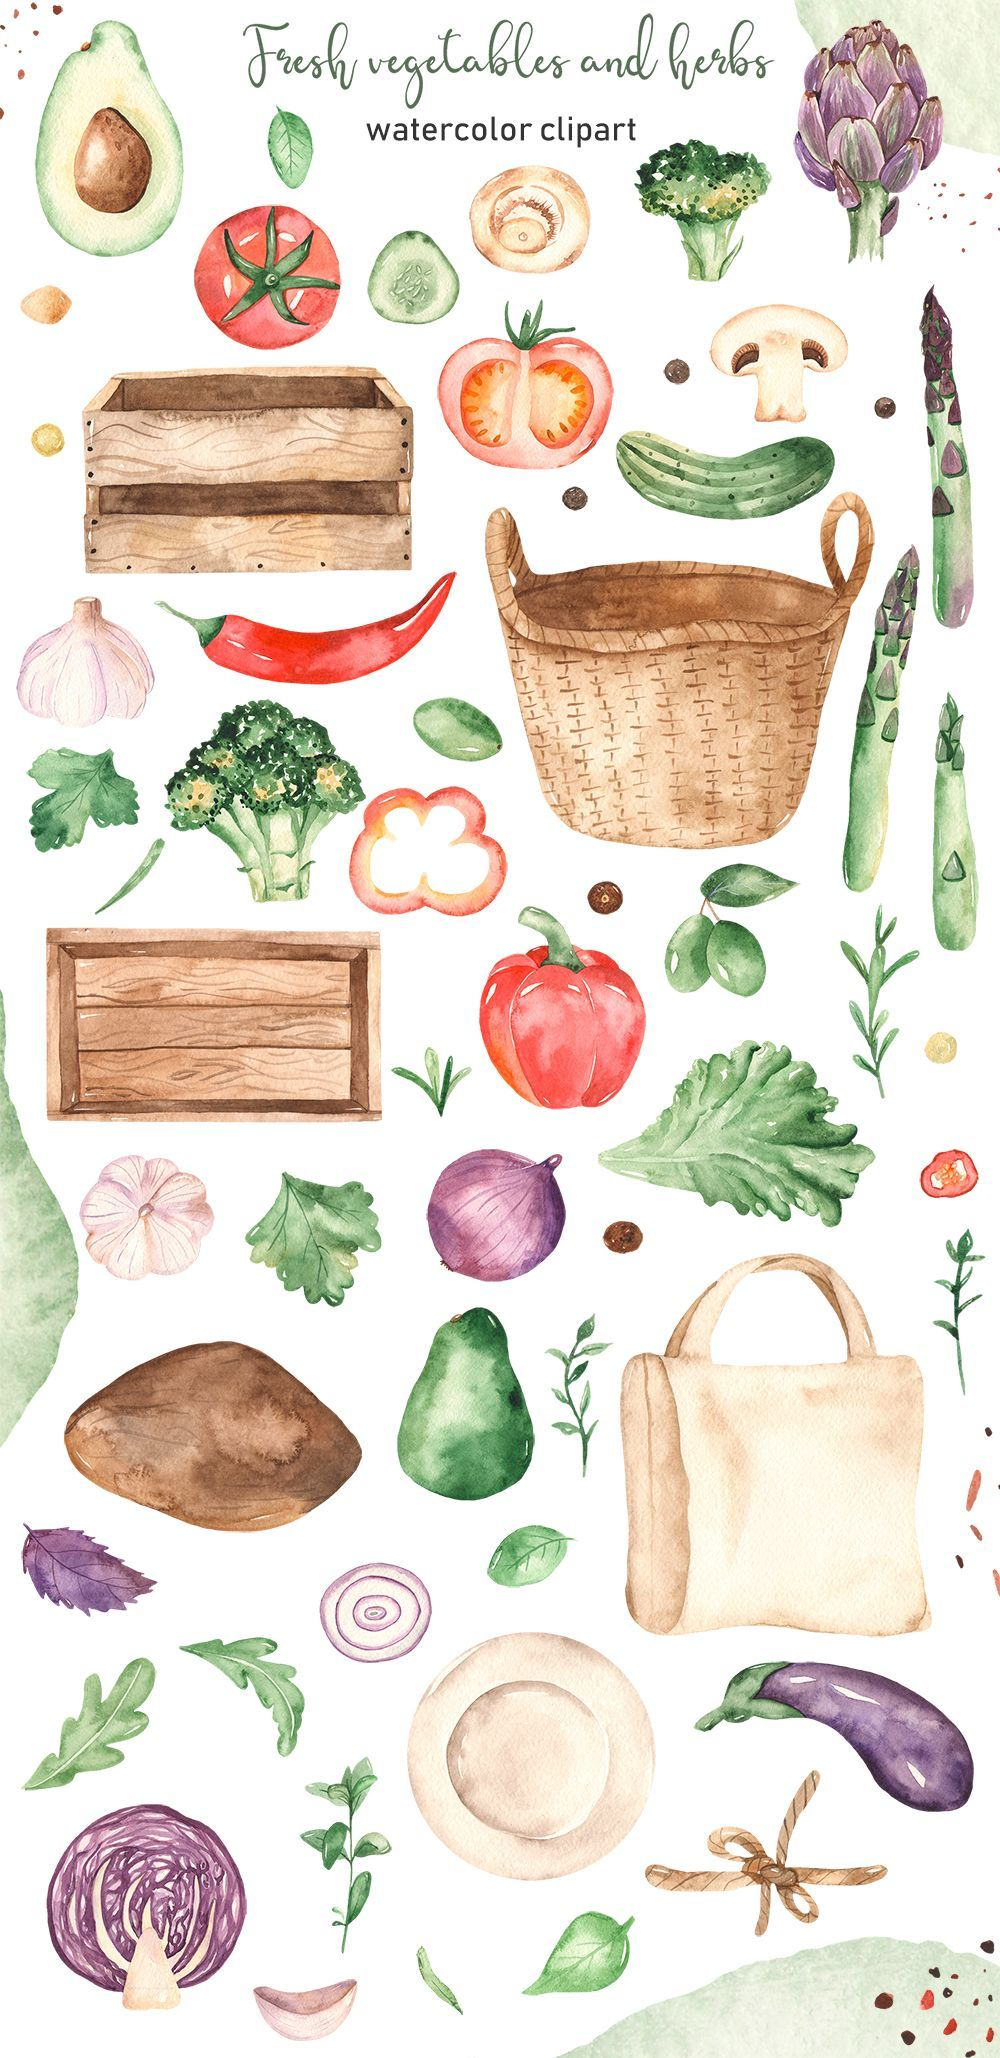 Vegetables and herbs Watercolor Clipart. Tomatoes, peppers ...